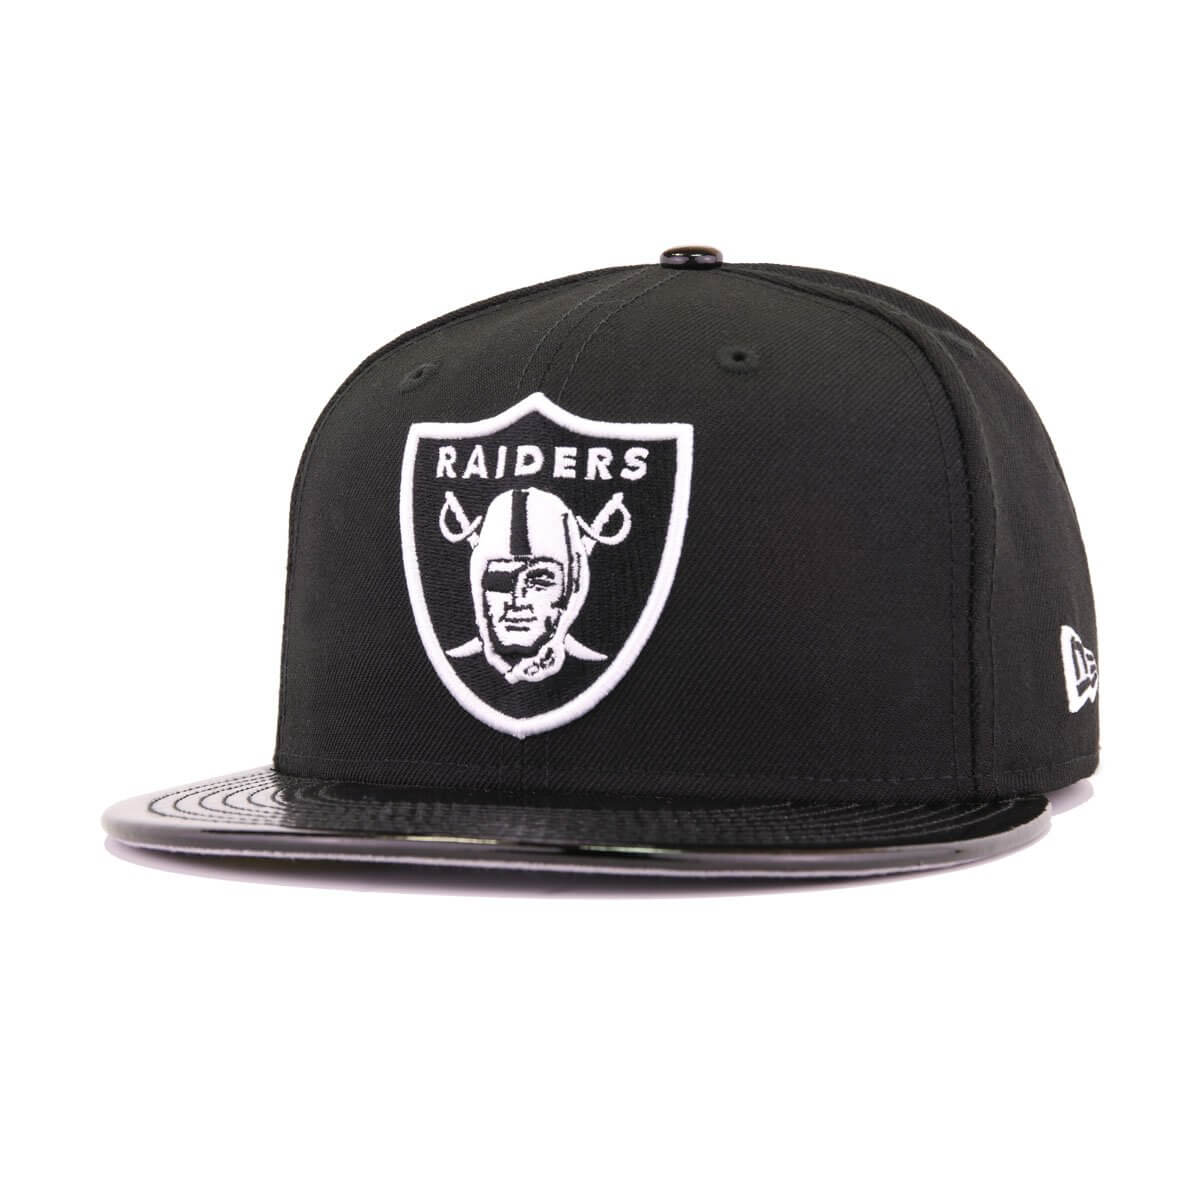 Oakland Raiders Black Patent Leather New Era 59Fifty Fitted